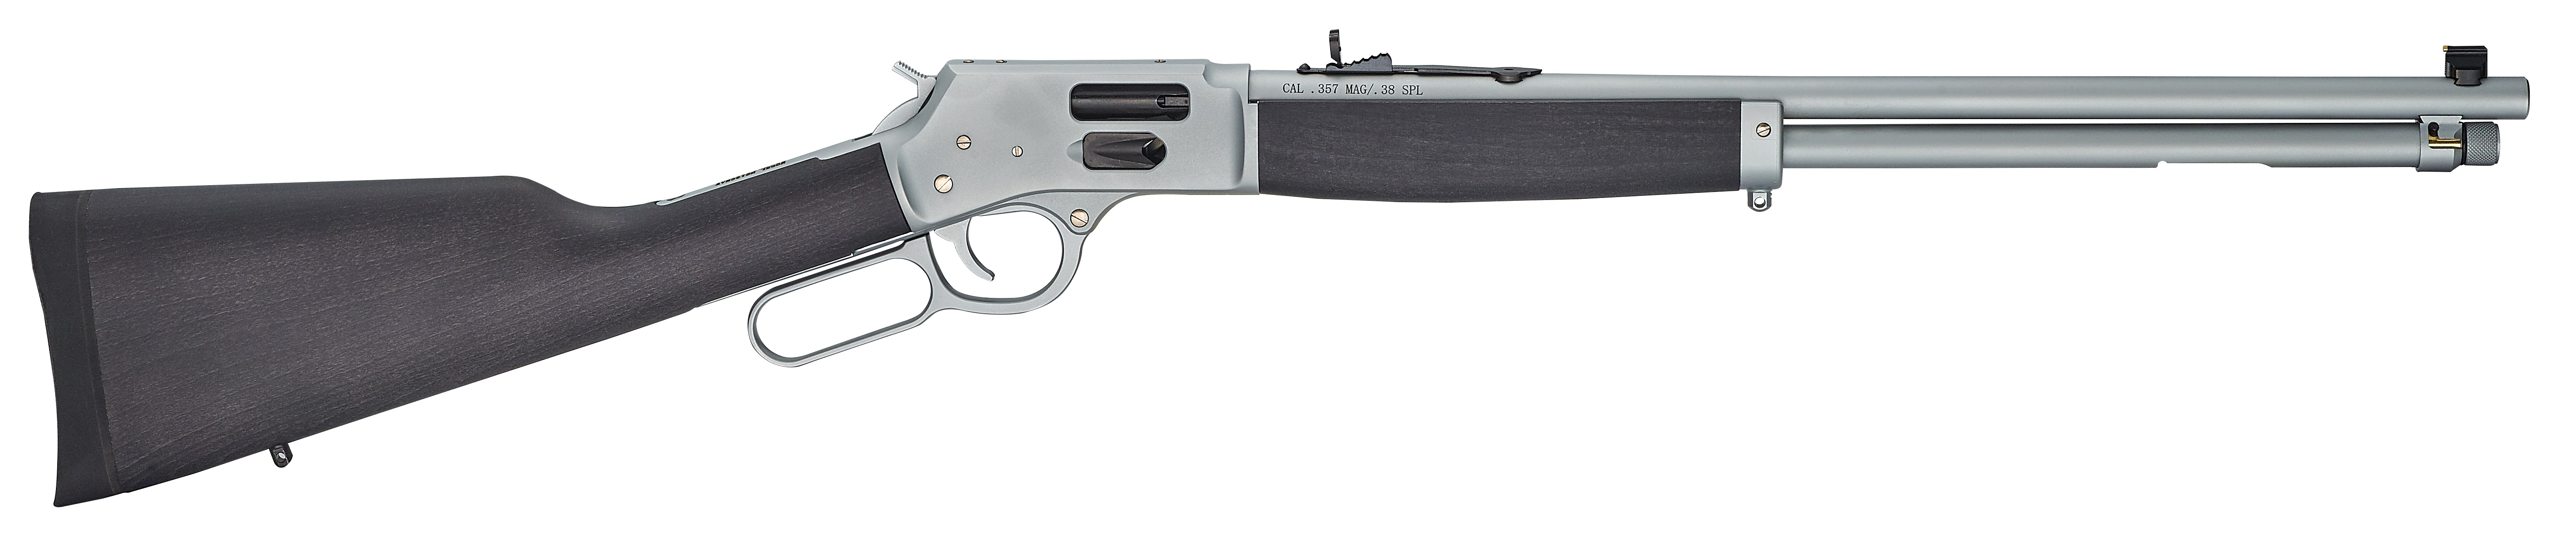 Henry Repeating Arms BIG BOY ALL-WEATHER 357 MAGNUM | 38 SPECIAL